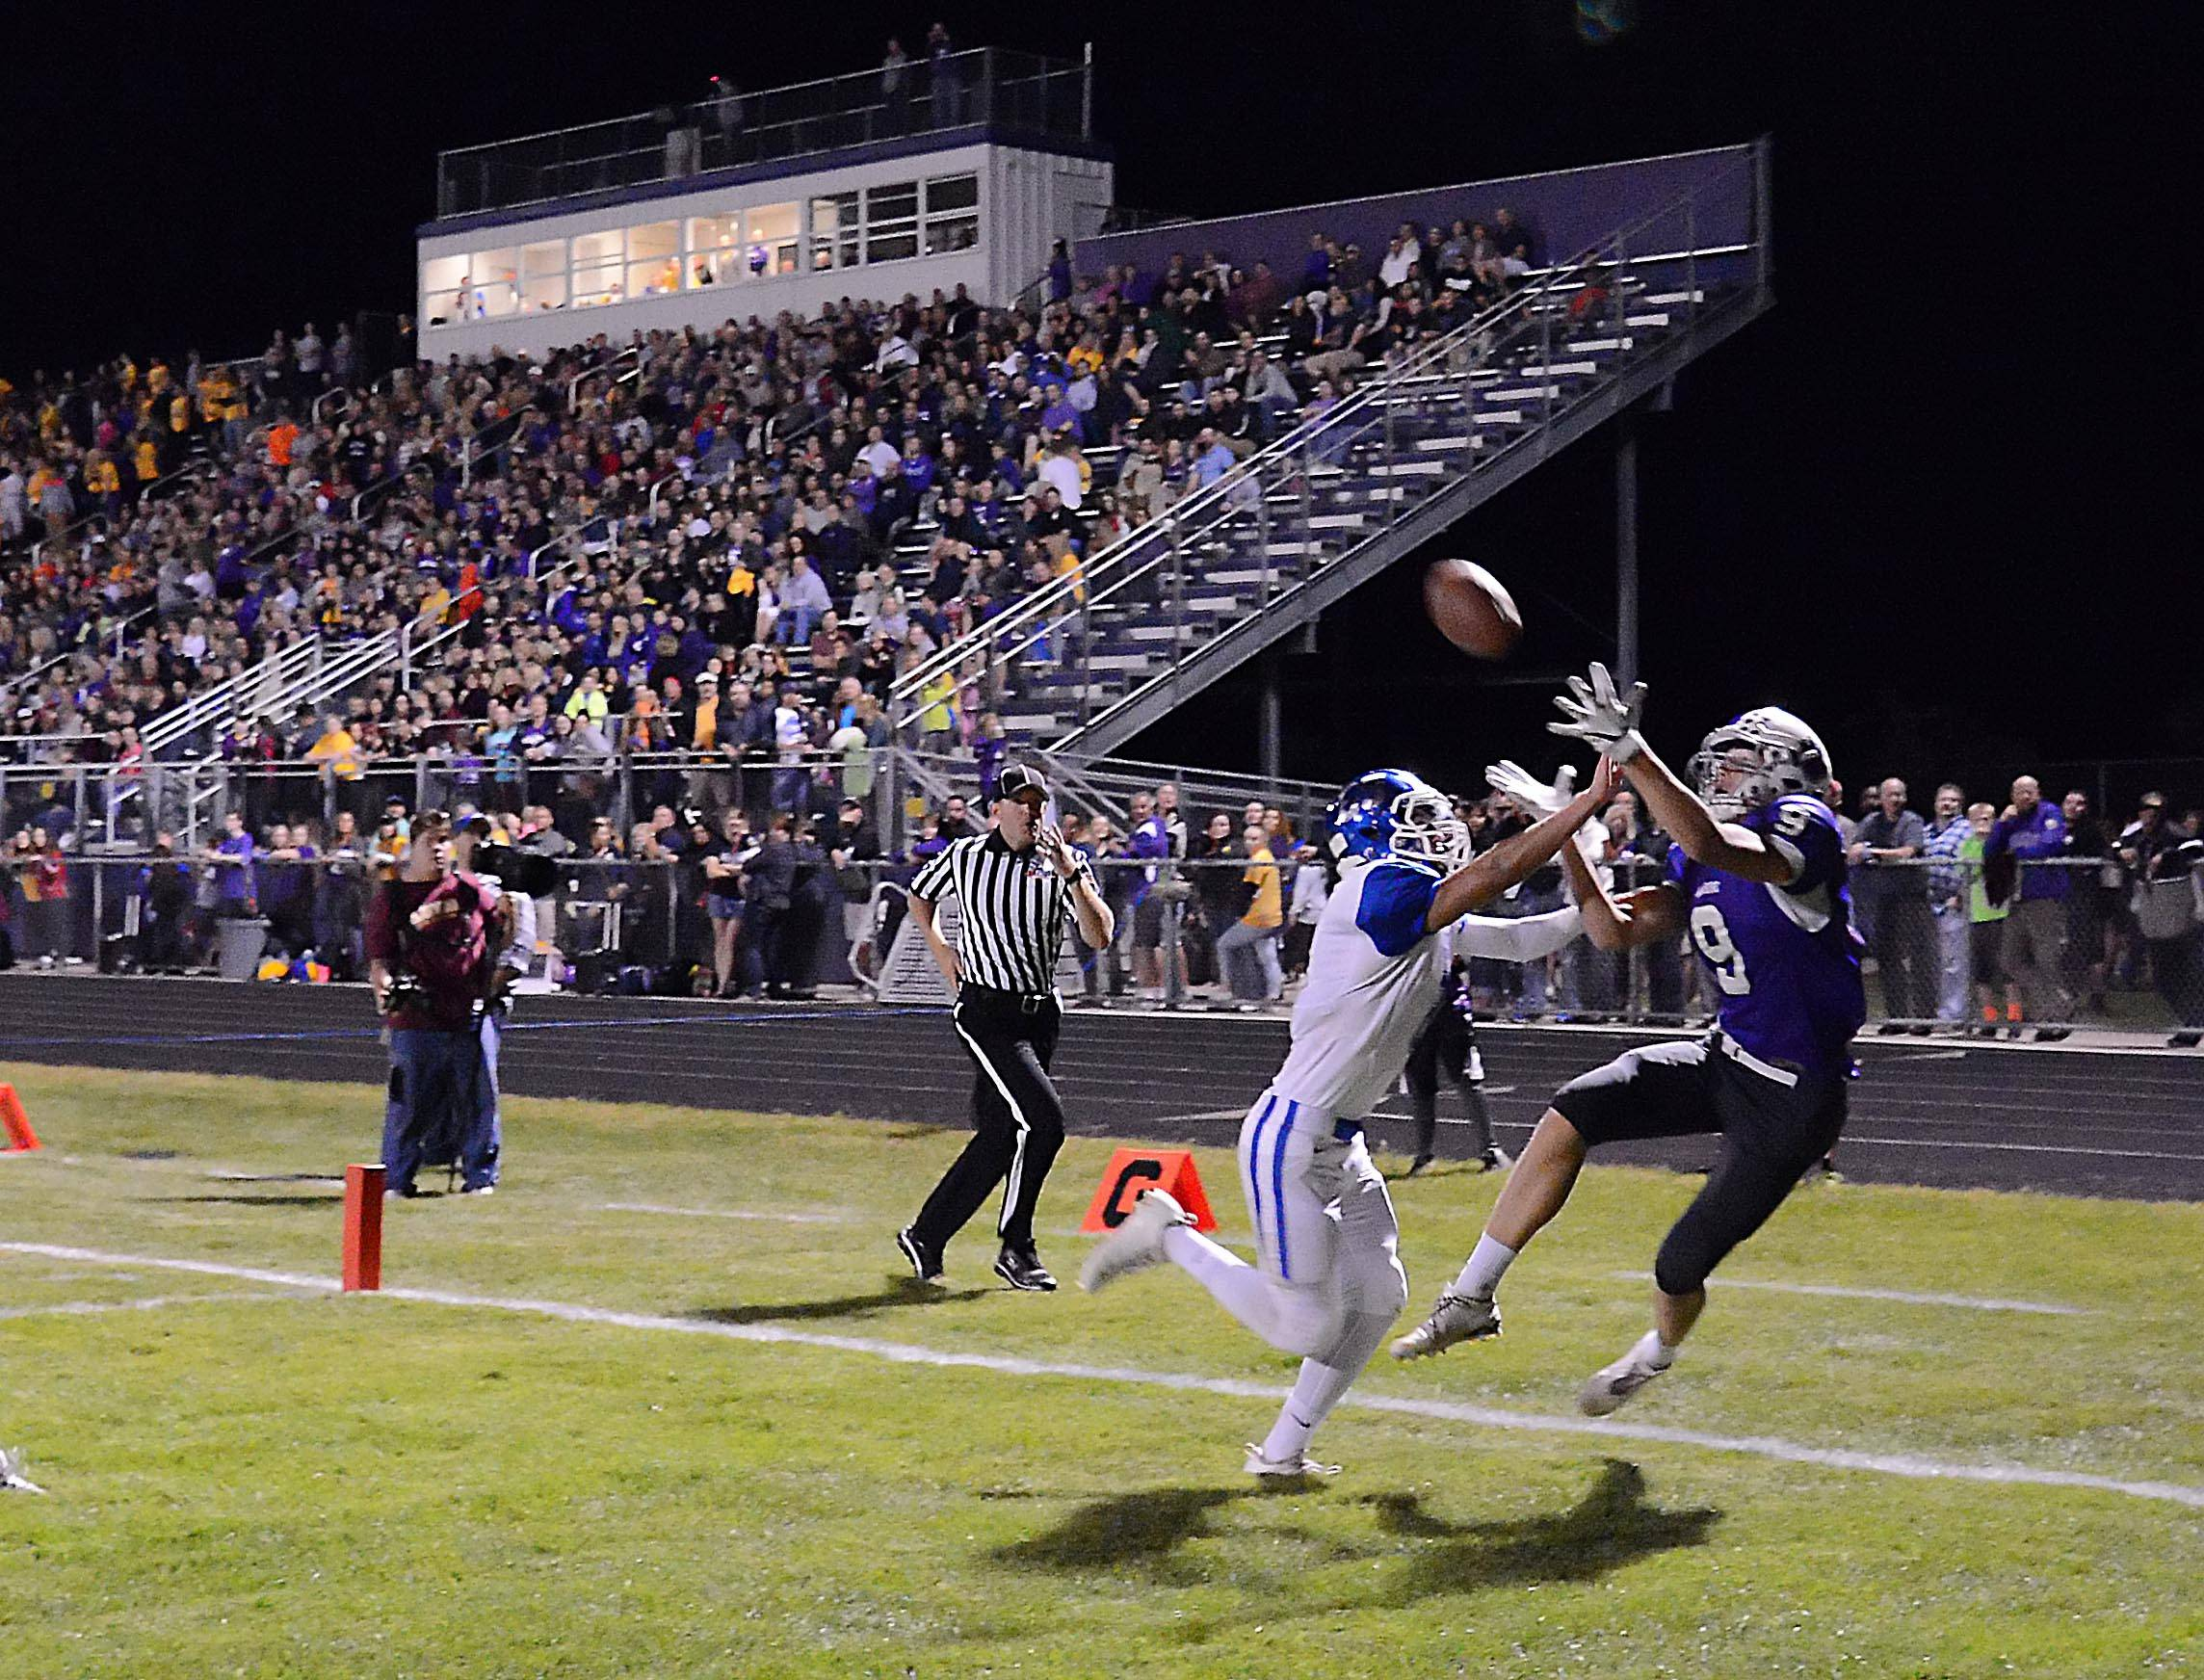 Images: Burlington Central falls to Hampshire, 54-14 in football